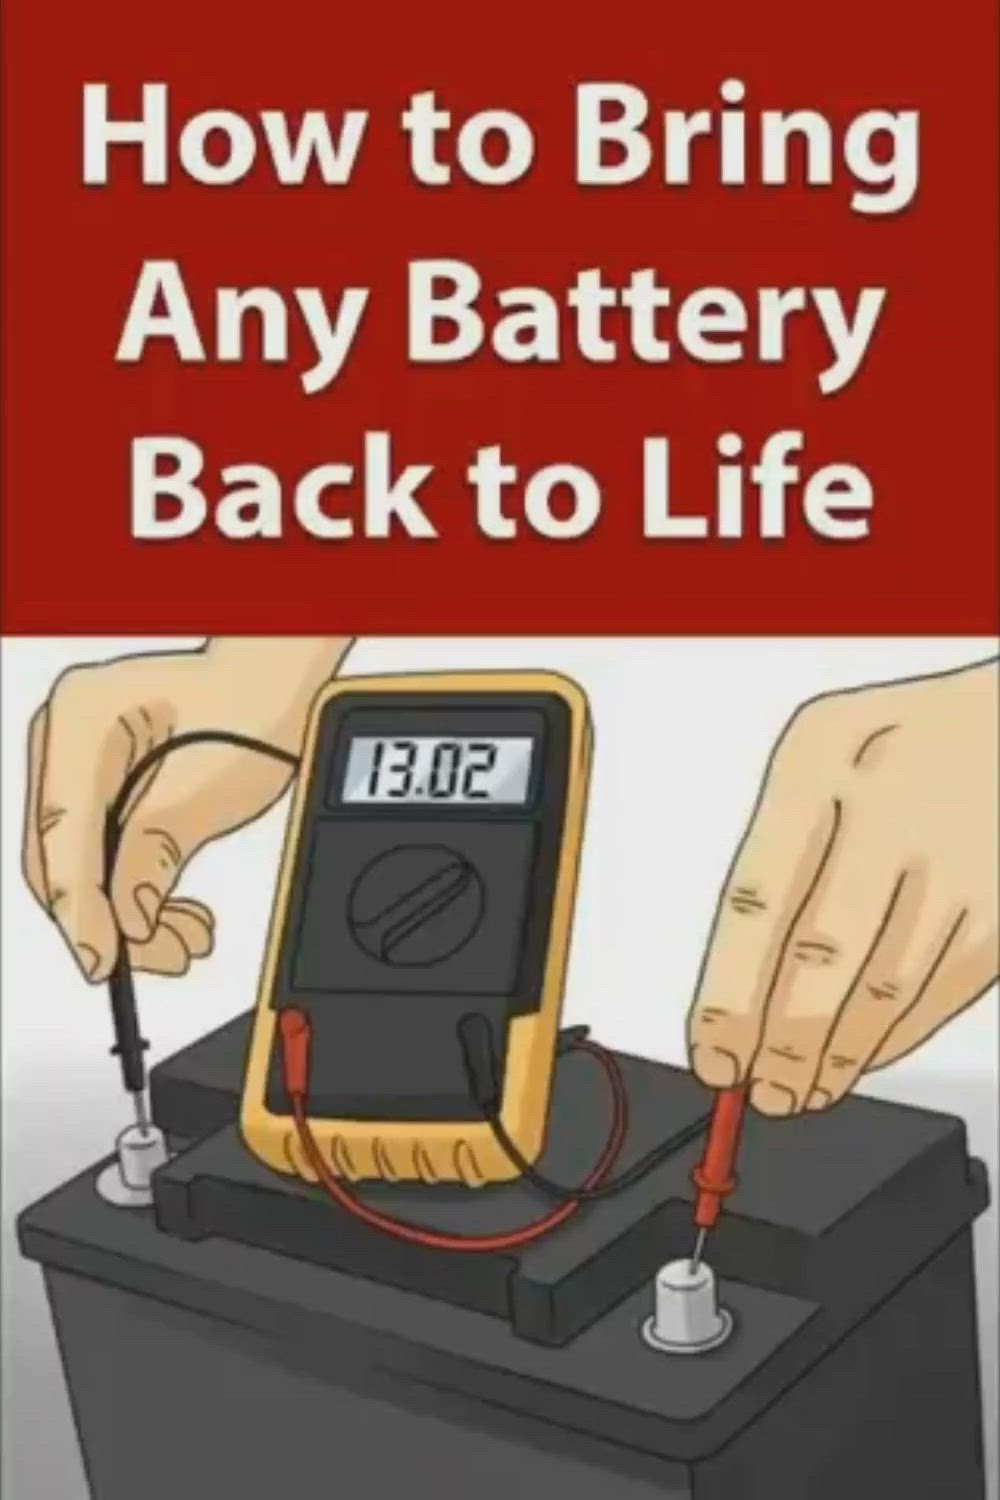 How To Restore A Battery Reconditioning Nicad Batteries Battery Reconditioning Business Fix It Video Batteries Diy Repair Batteries